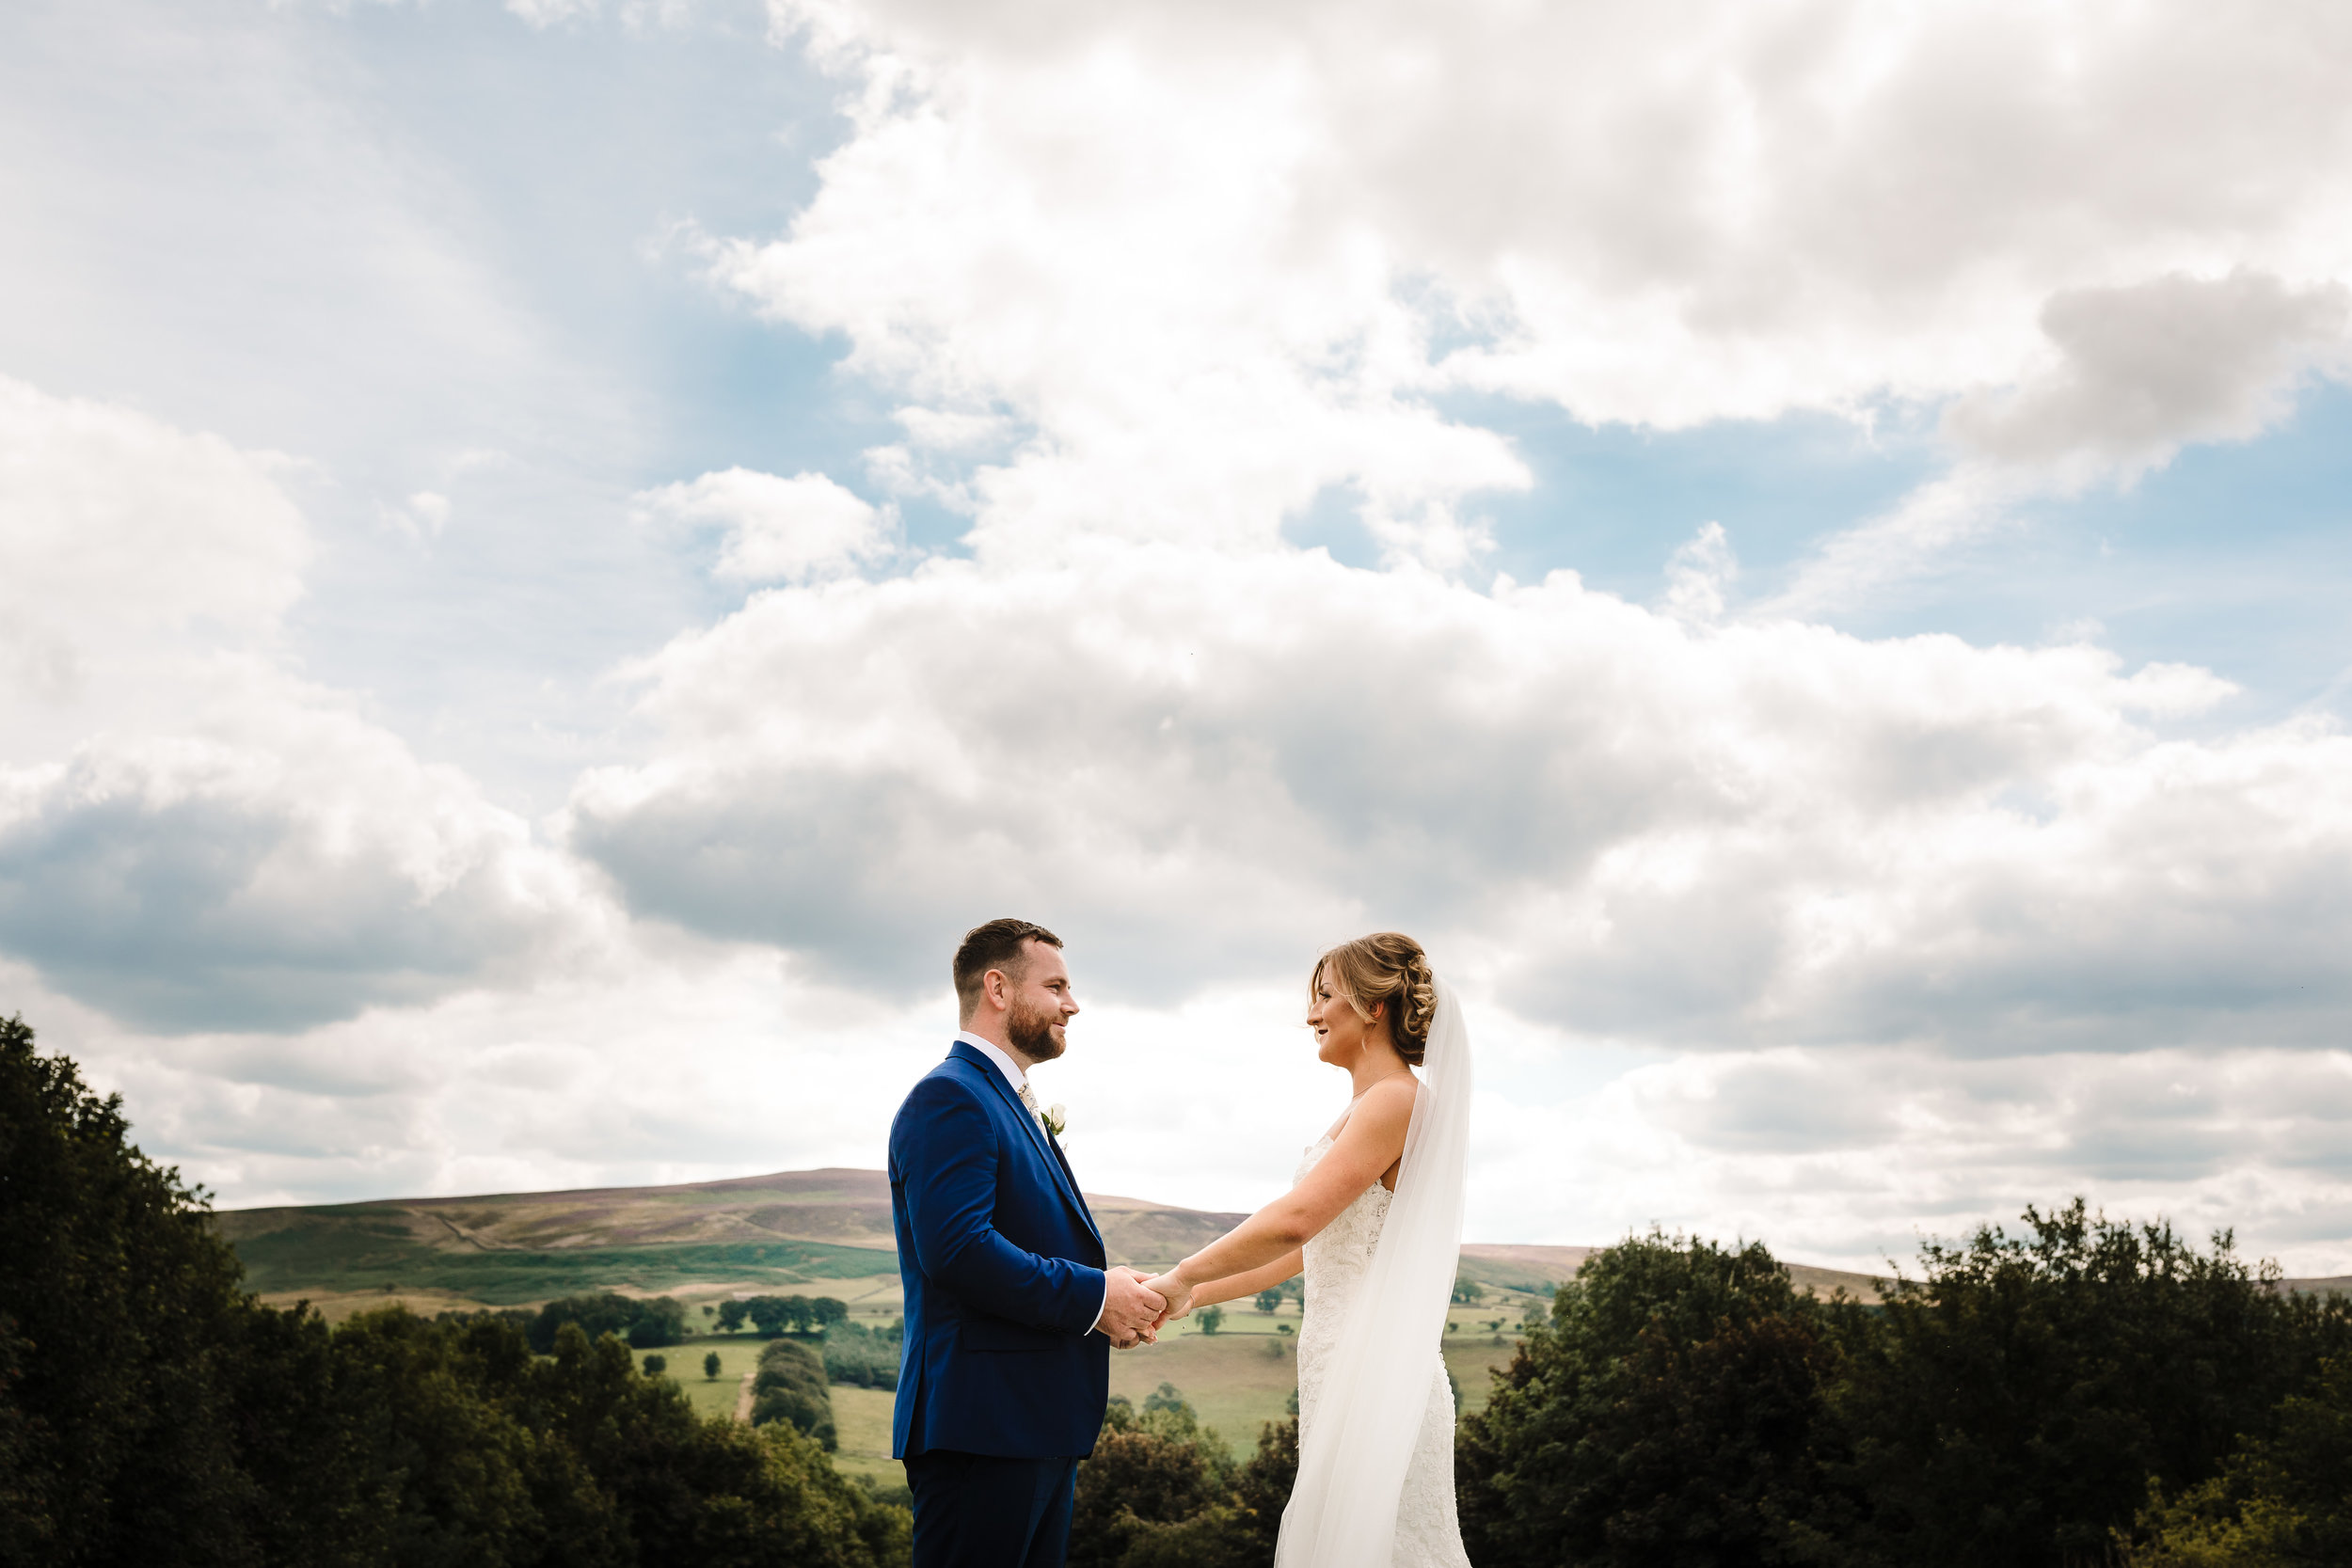 A bride and groom saying their vows with the yorkshire dales landscape behind them